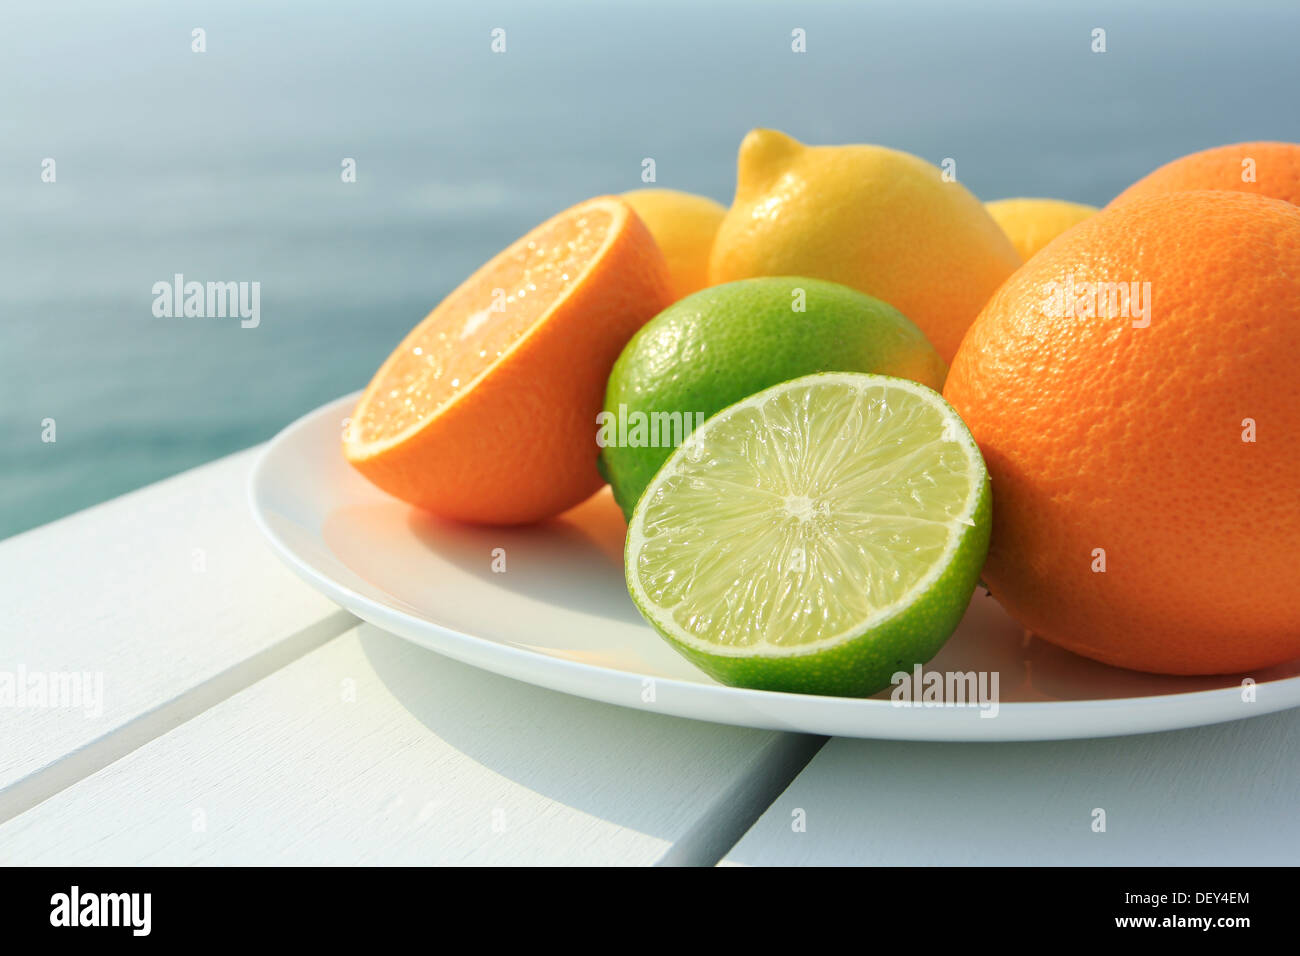 Oranges, lemons and limes by the coast - Stock Image